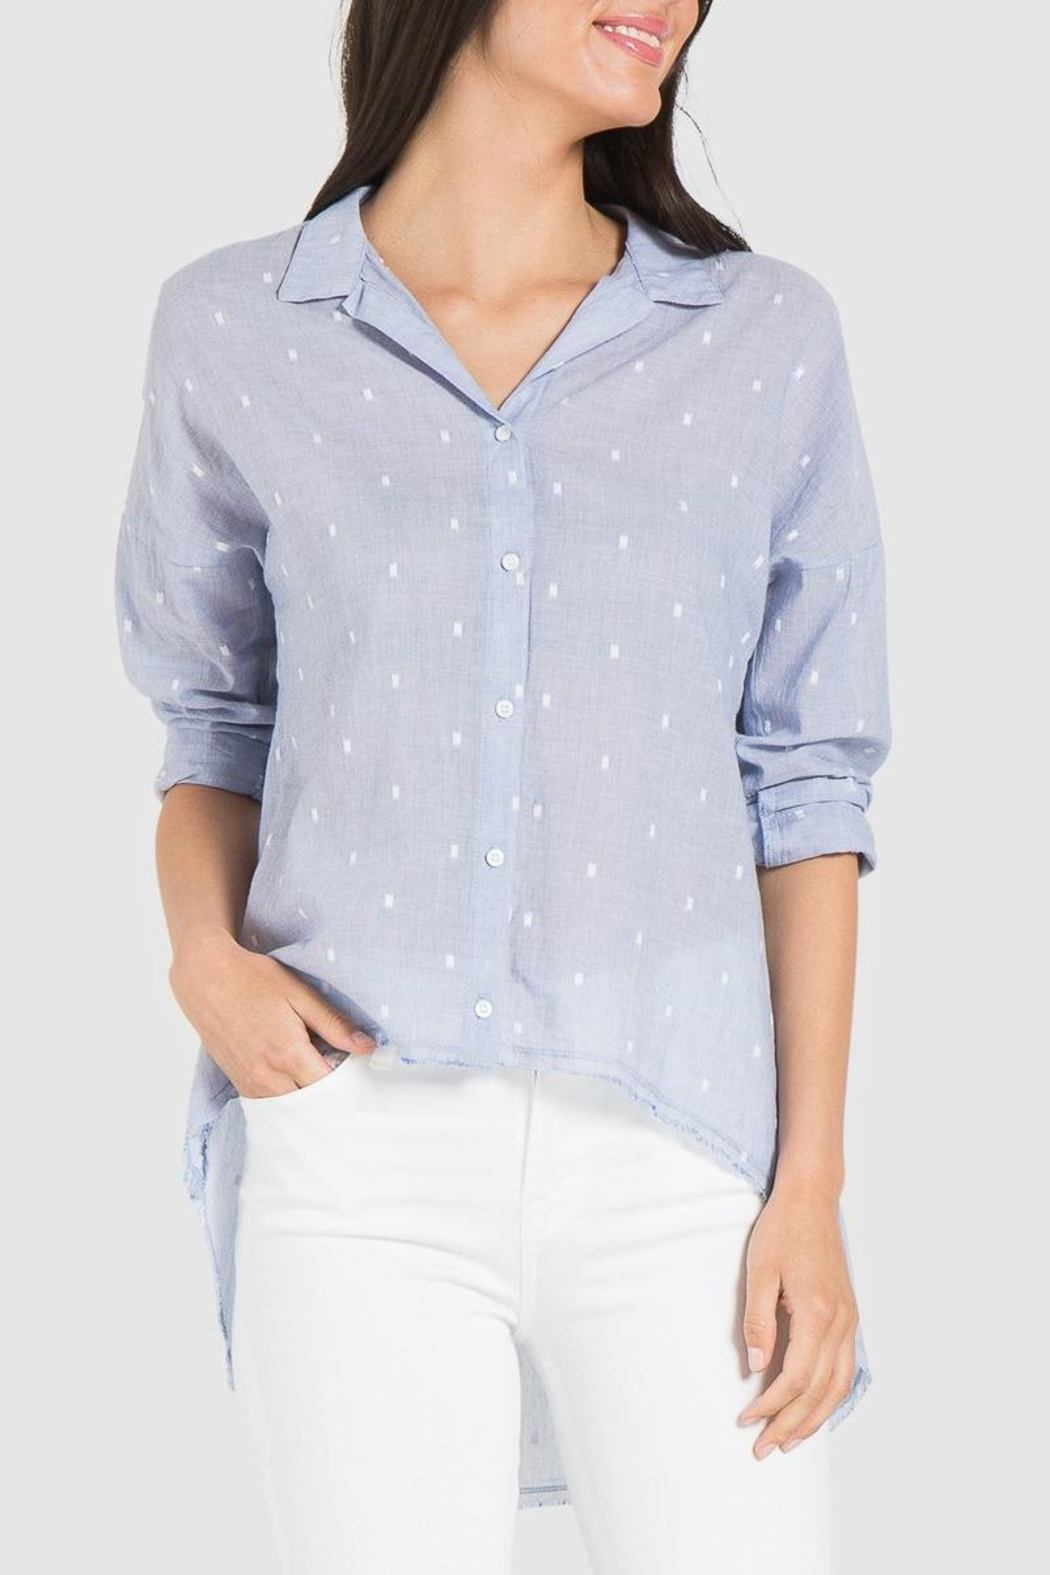 Bella Dahl High-Low Shirt - Back Cropped Image